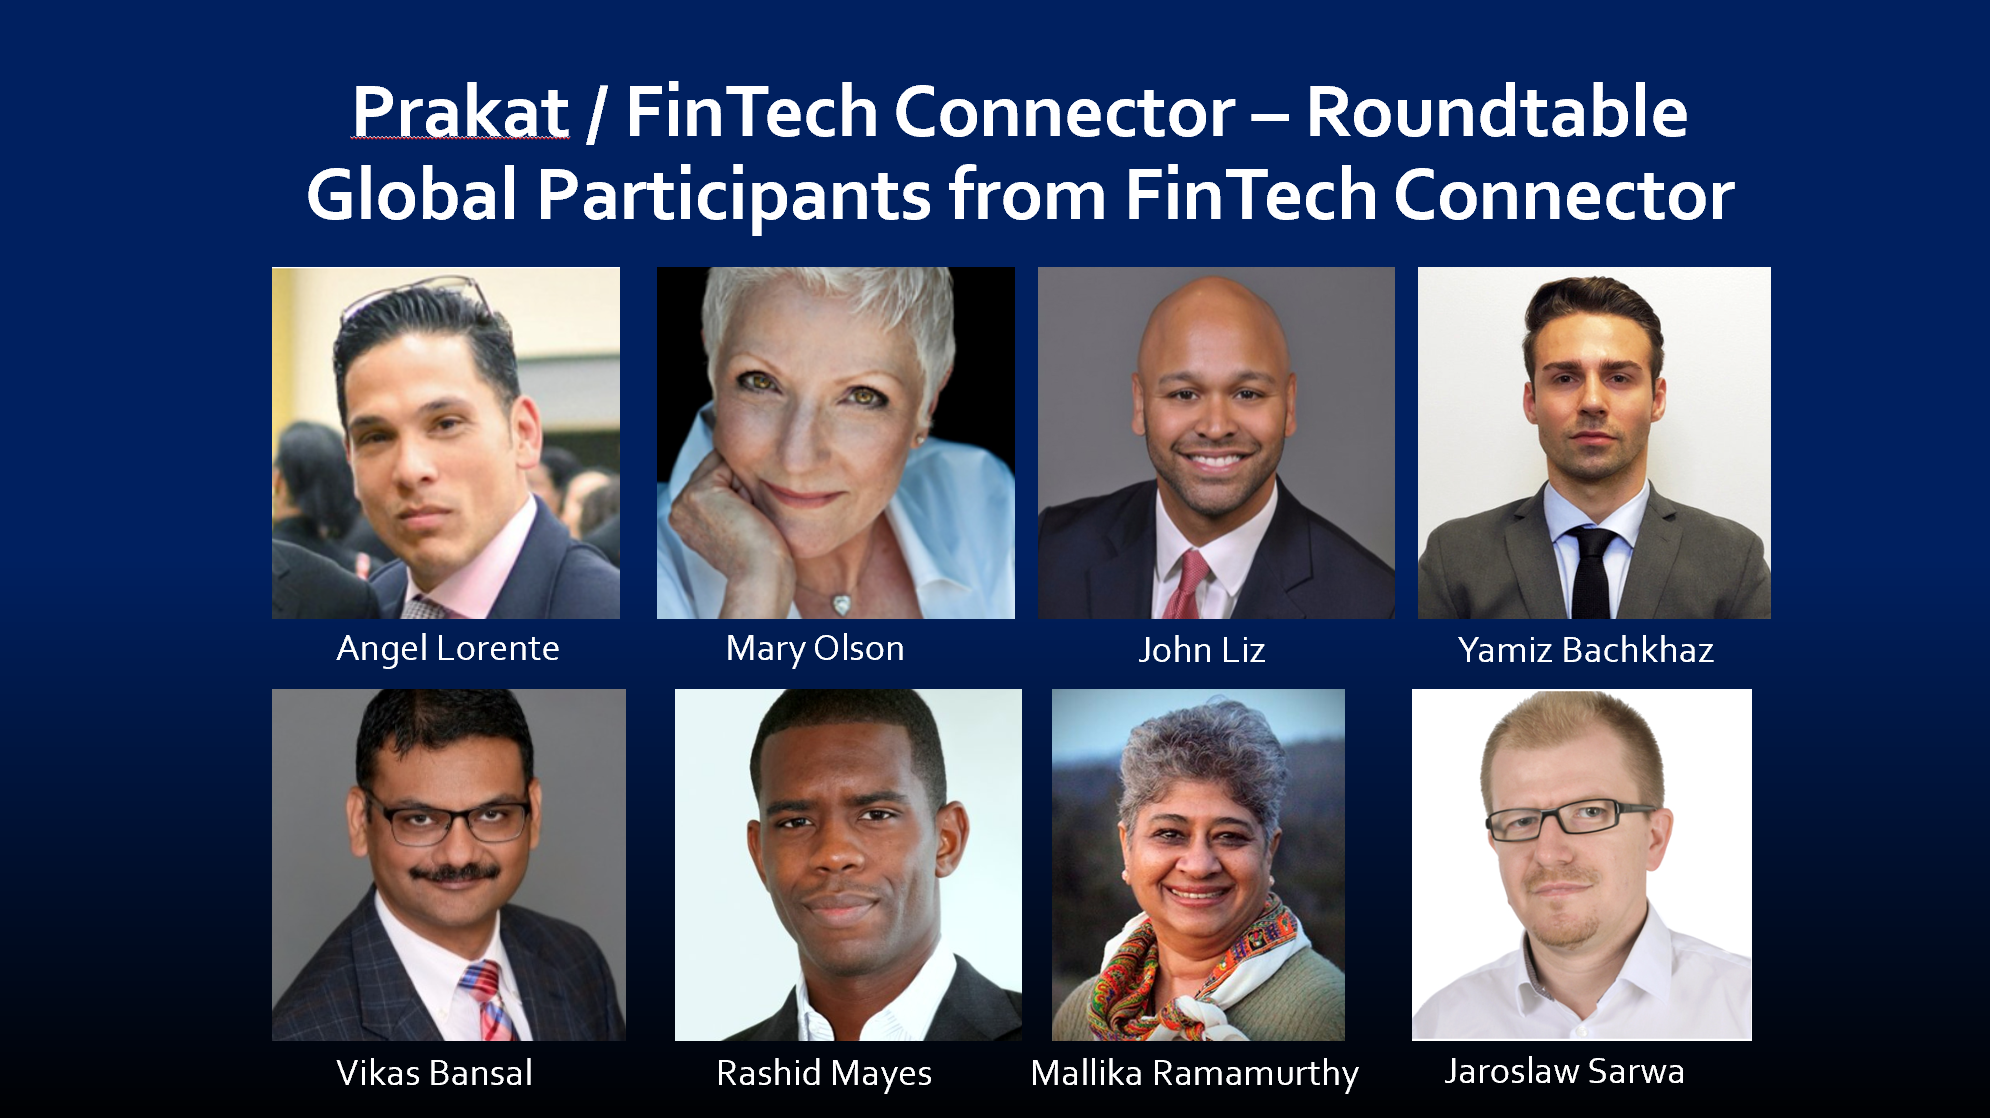 FinTech Connector Community Partners that participated on the call to welcome the Bangalore Fintech Community.